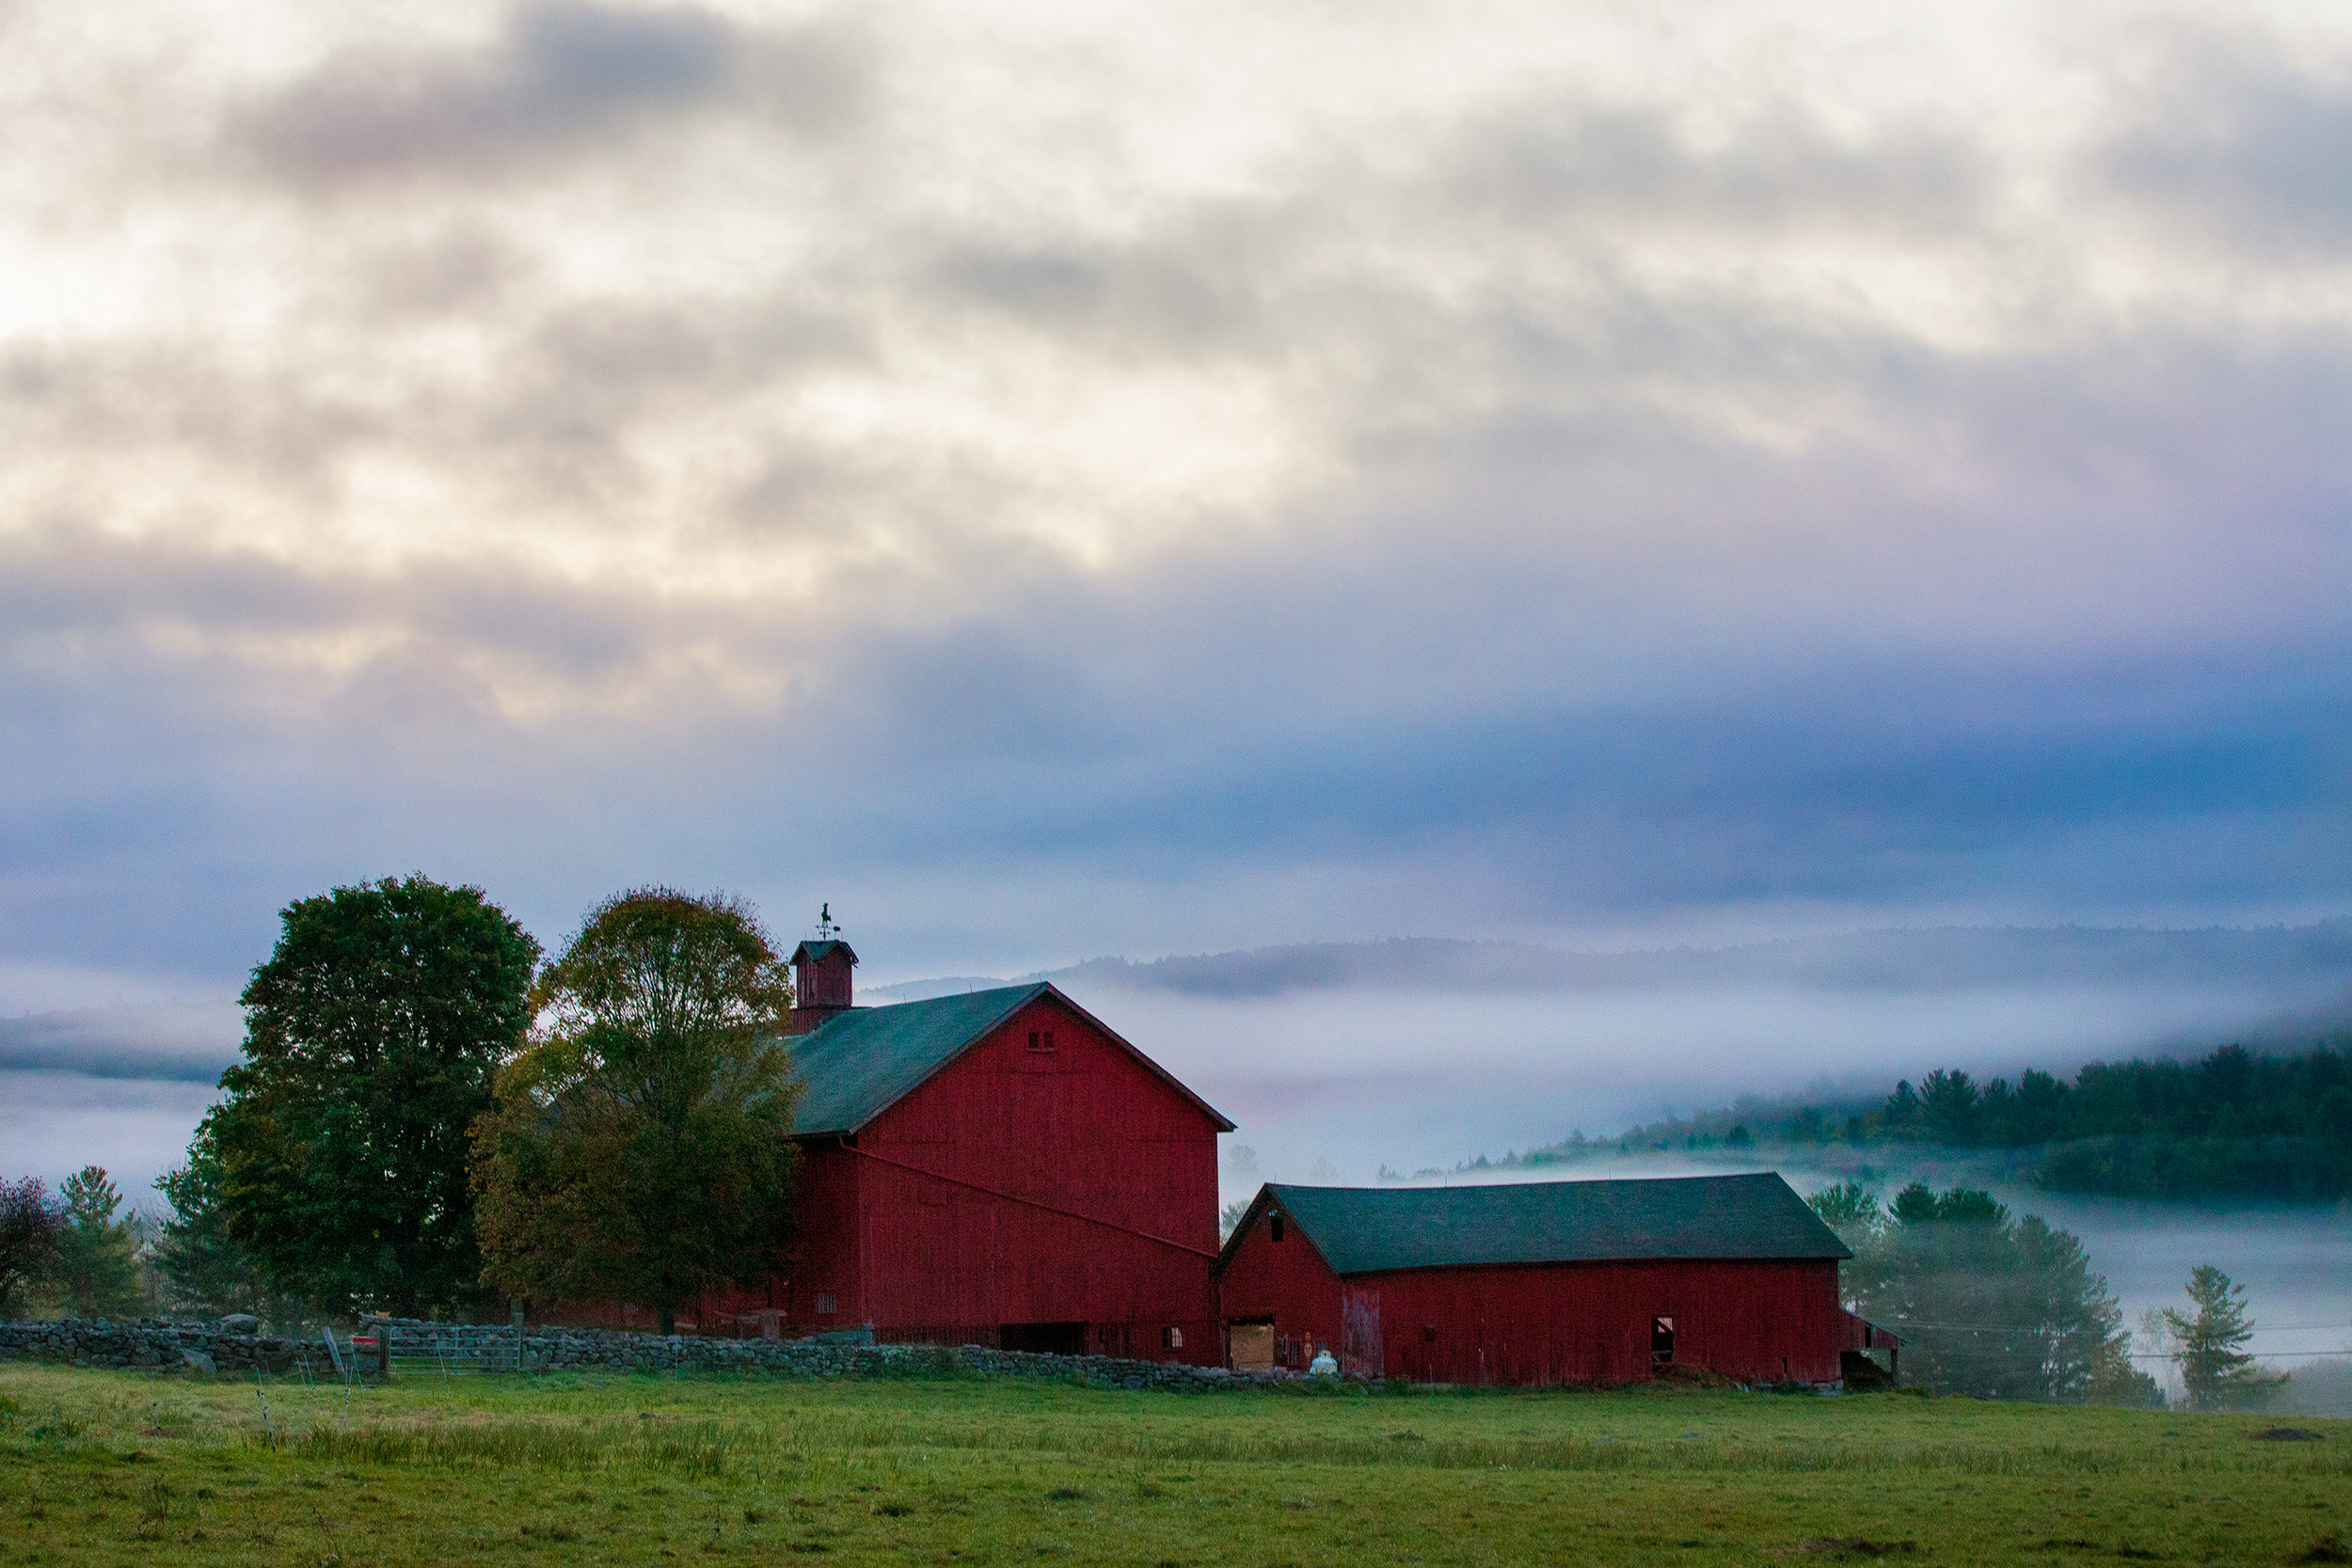 BARN-FOG-IN-CORNWALLFARM-LANDSCAPE-©-JONATHAN-R.-BECKERMAN-PHOTOGRAPHY-14.jpg